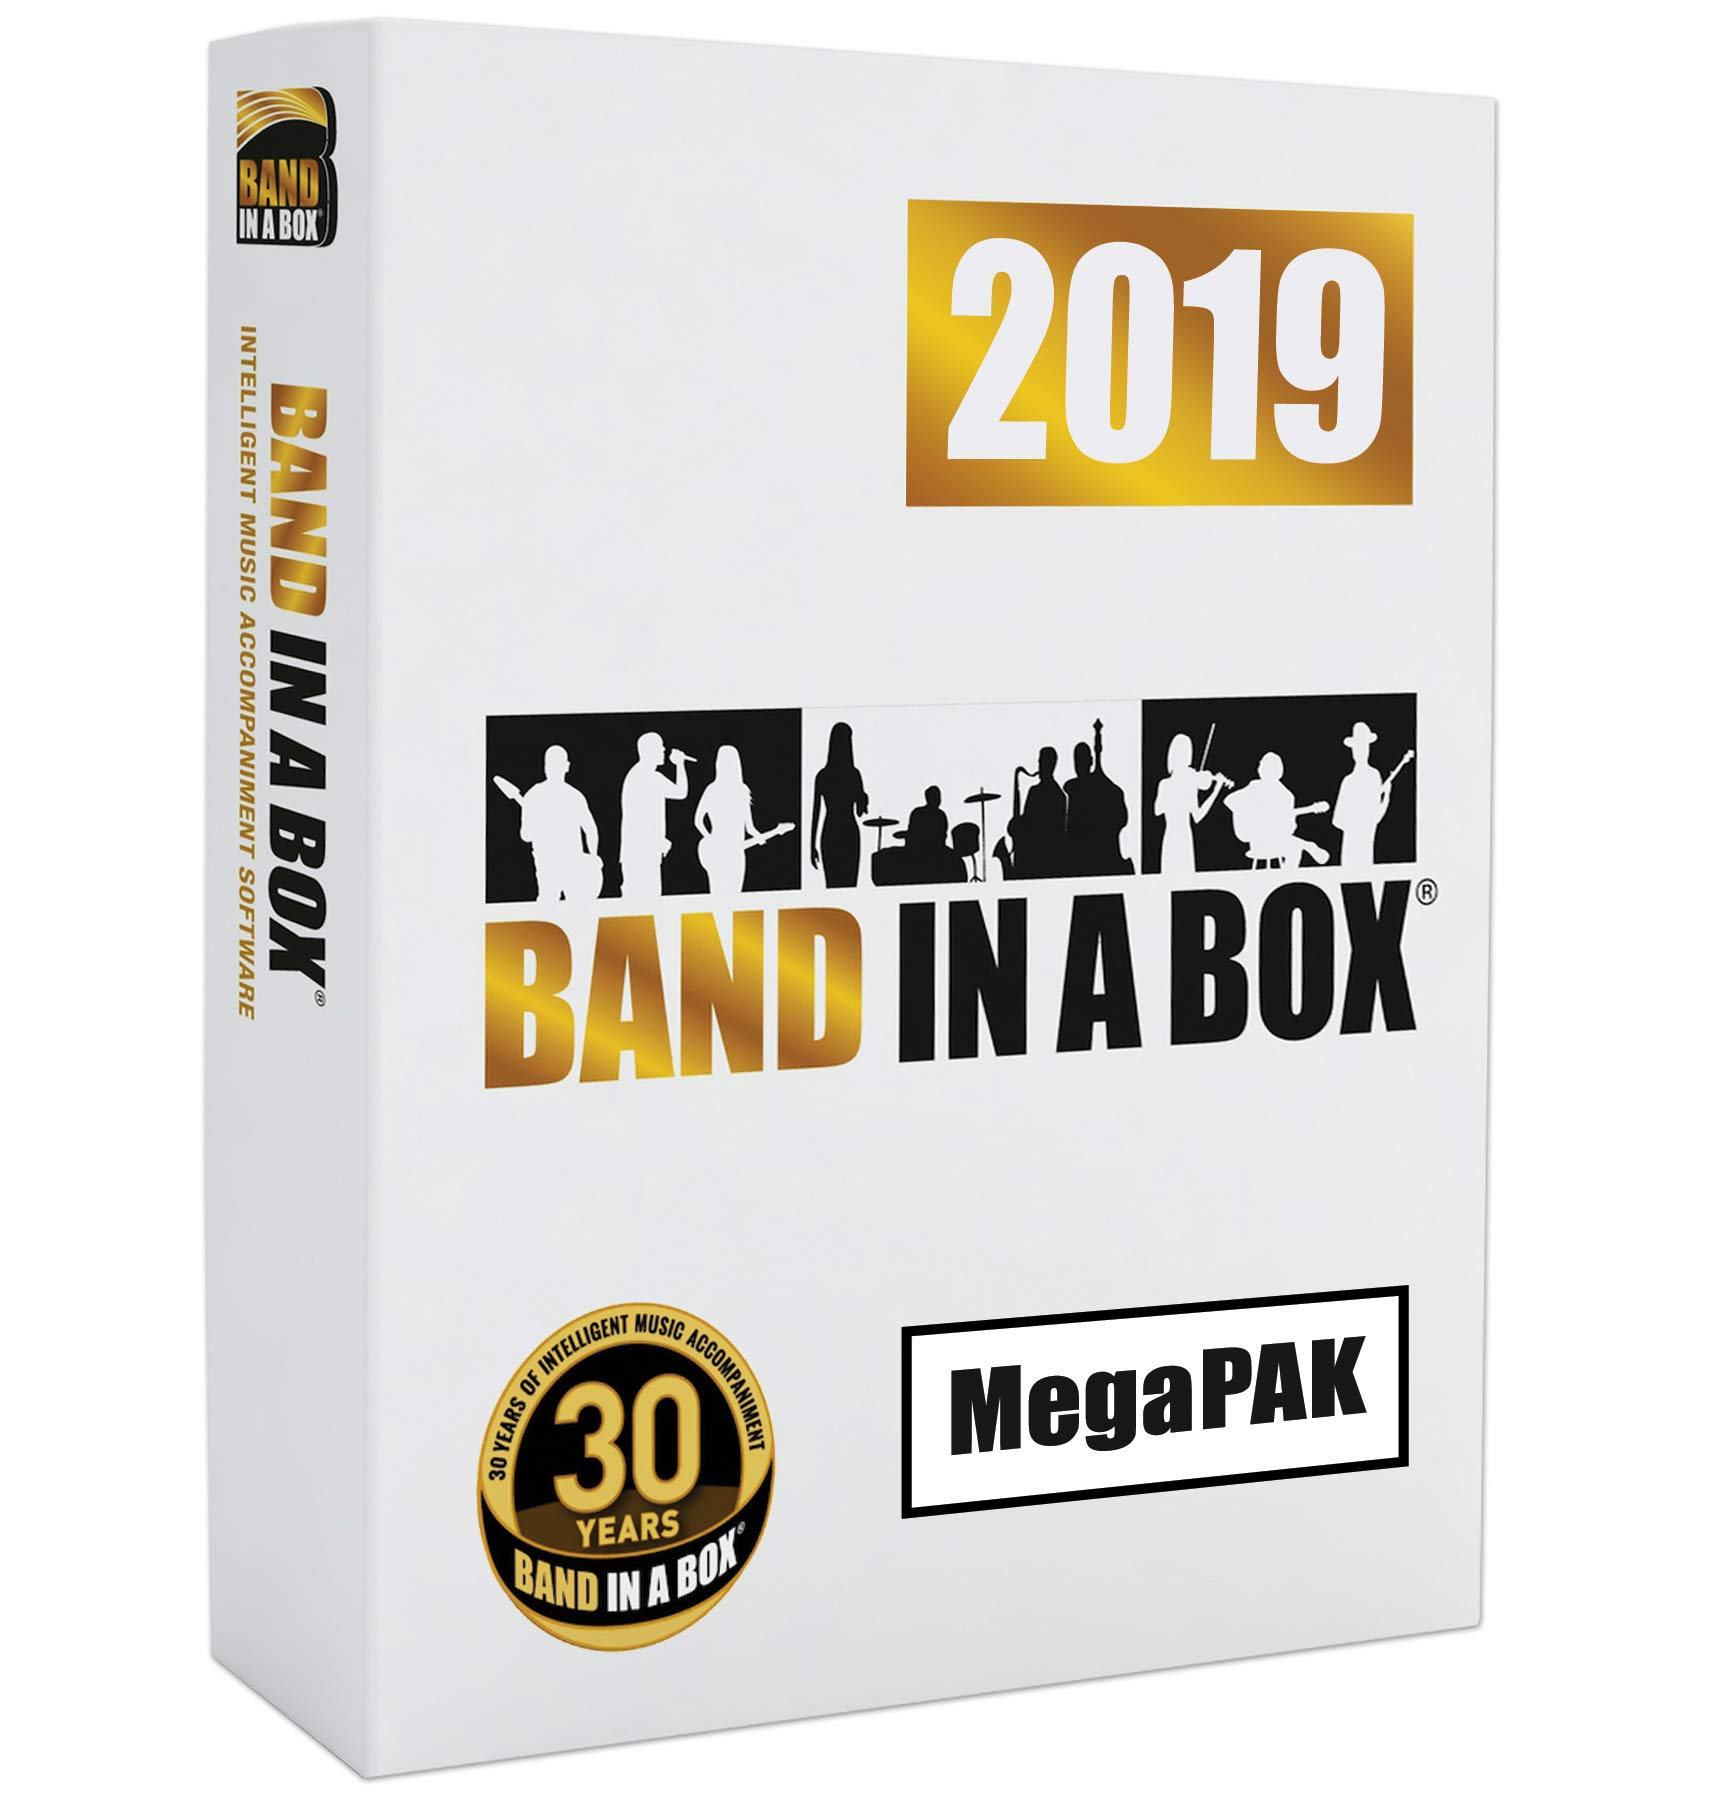 Band-in-a-Box 2019 MegaPAK [Windows USB Flash Drive] - Create your own backing tracks by PG Music Inc.